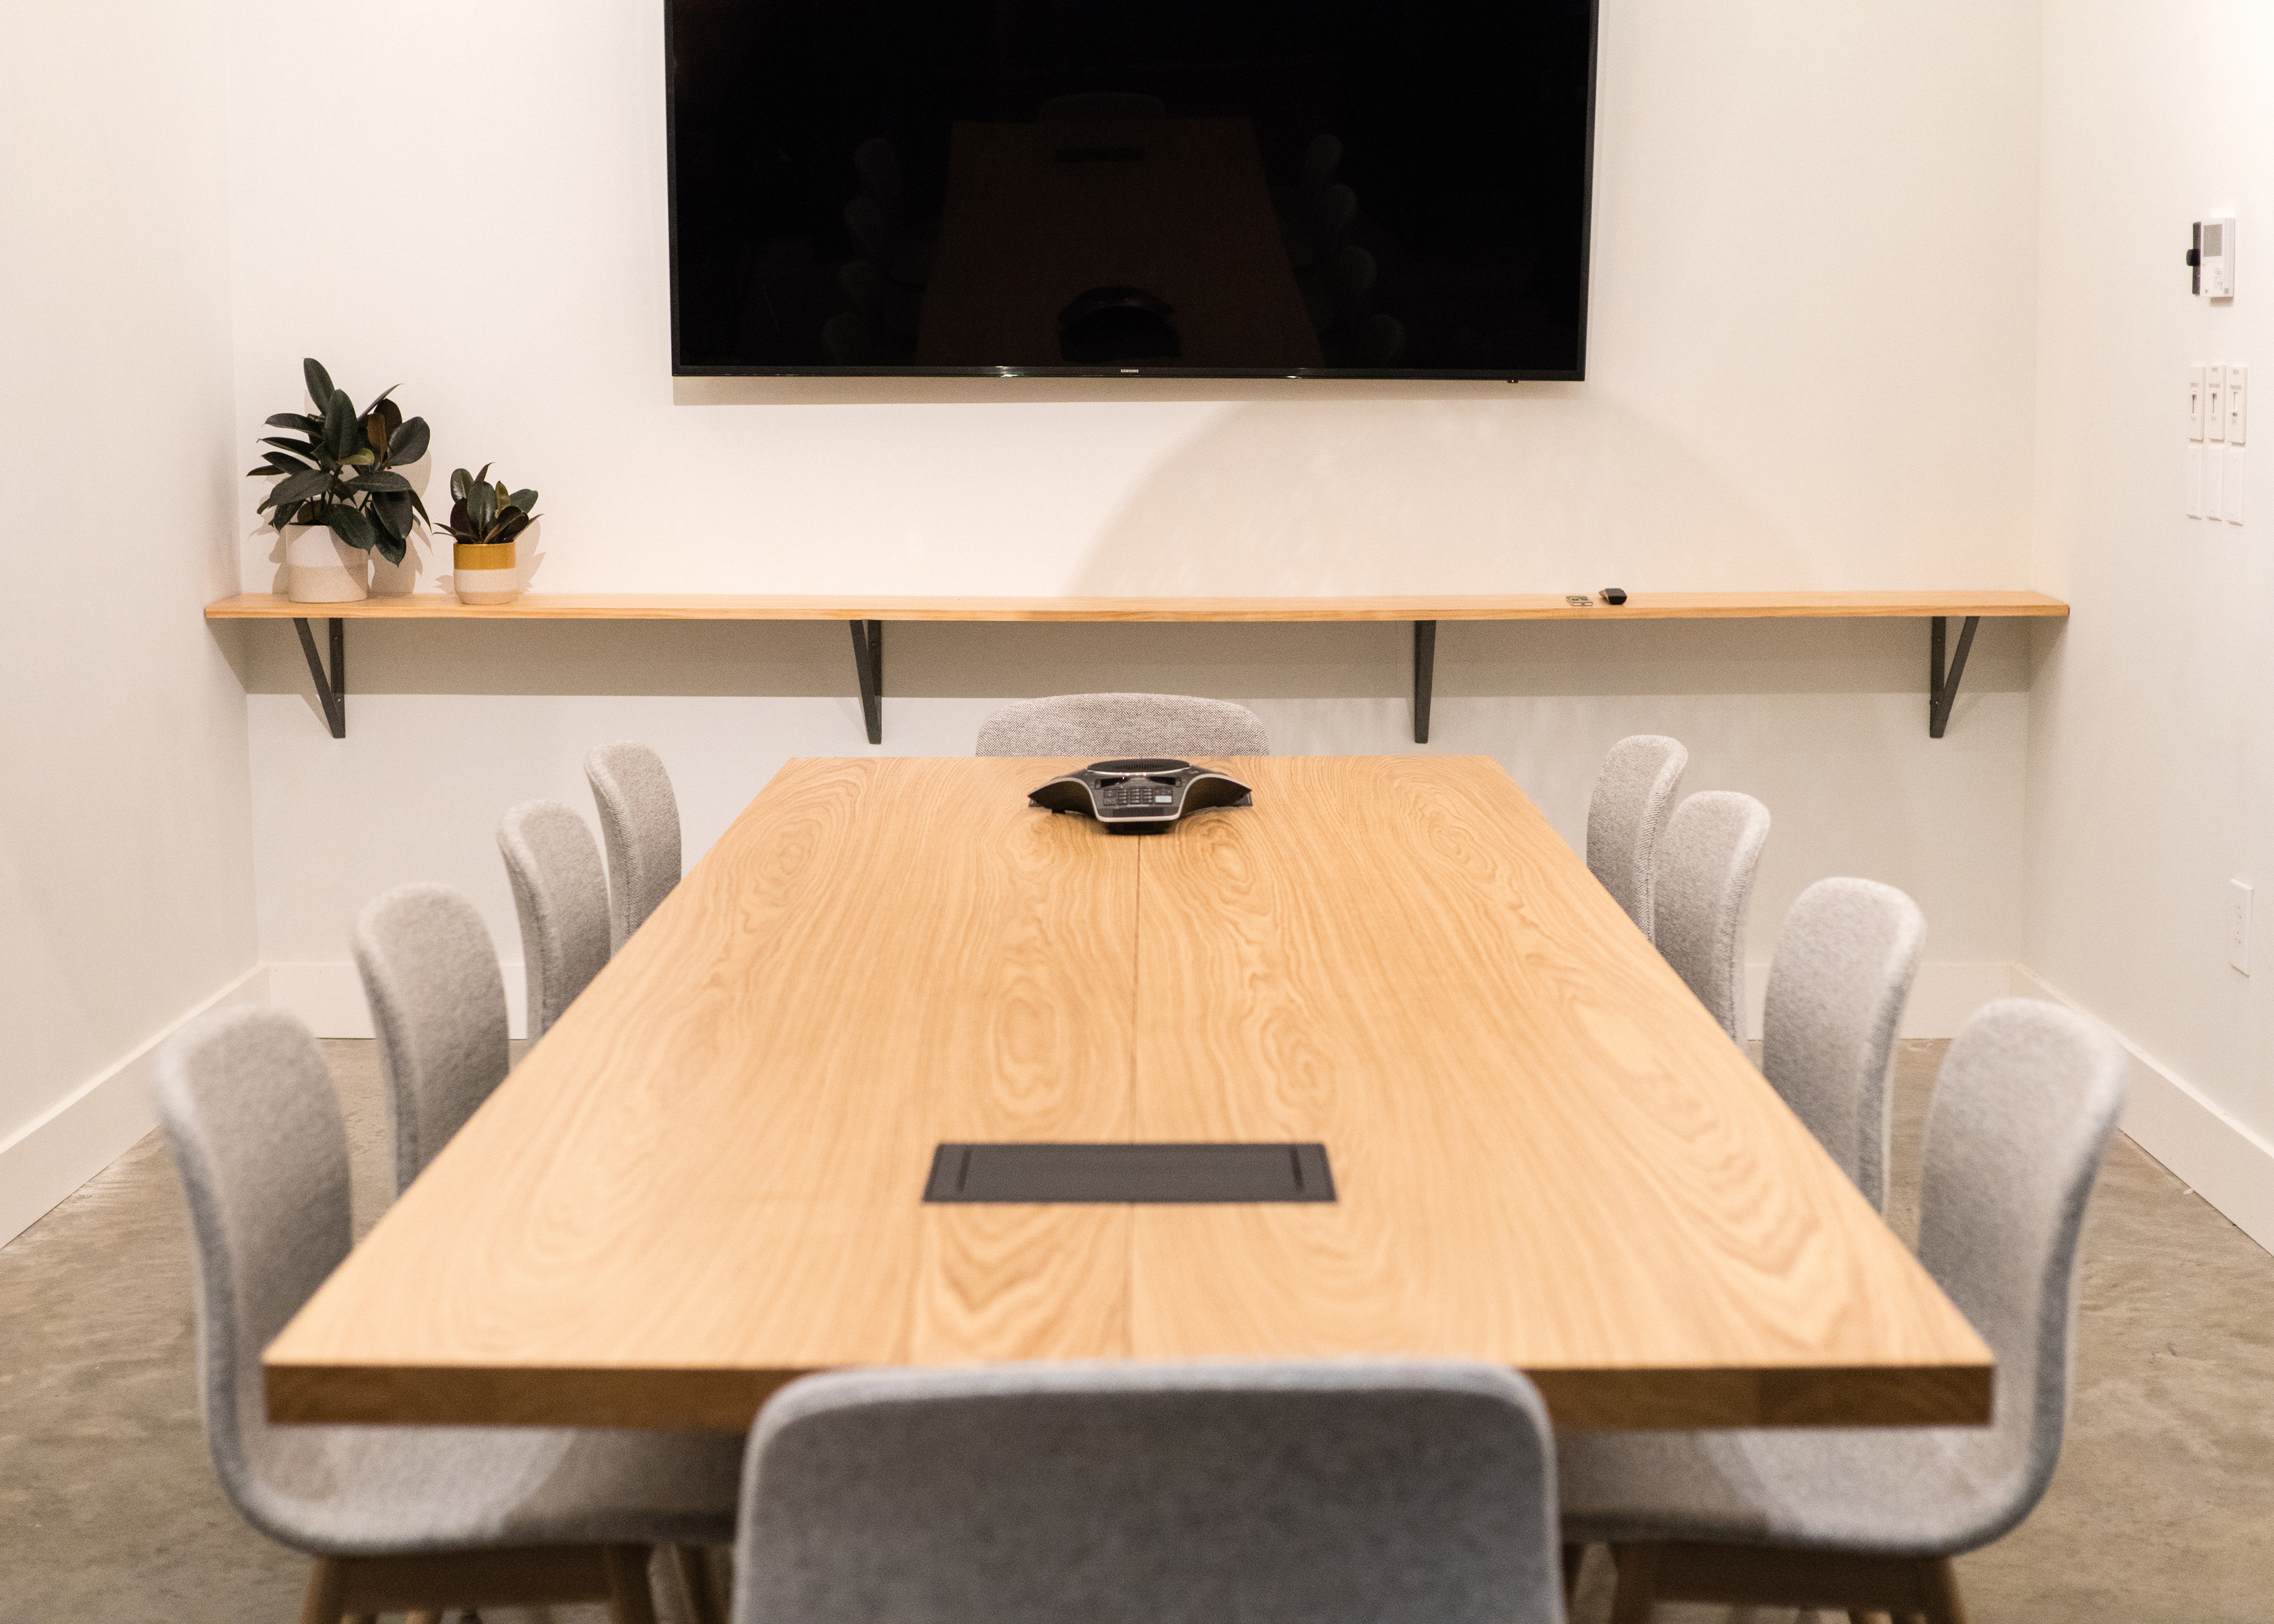 Boardroom Table at South Congress Hotel